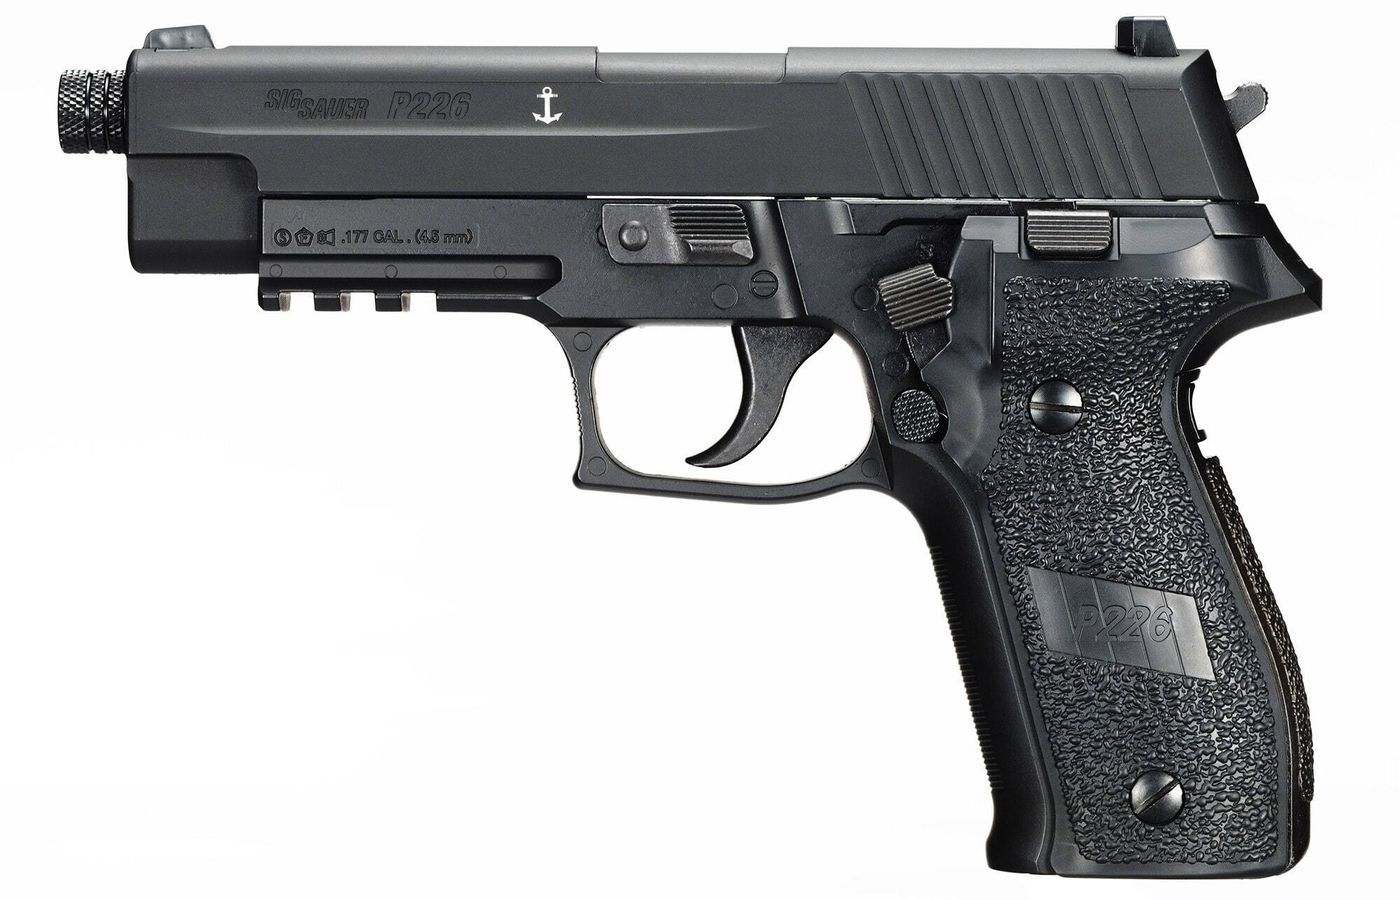 Airgun Pistolet Sig Sauer P226 Noir Co2 Blowback plombs 4,5 mm 2,8 J